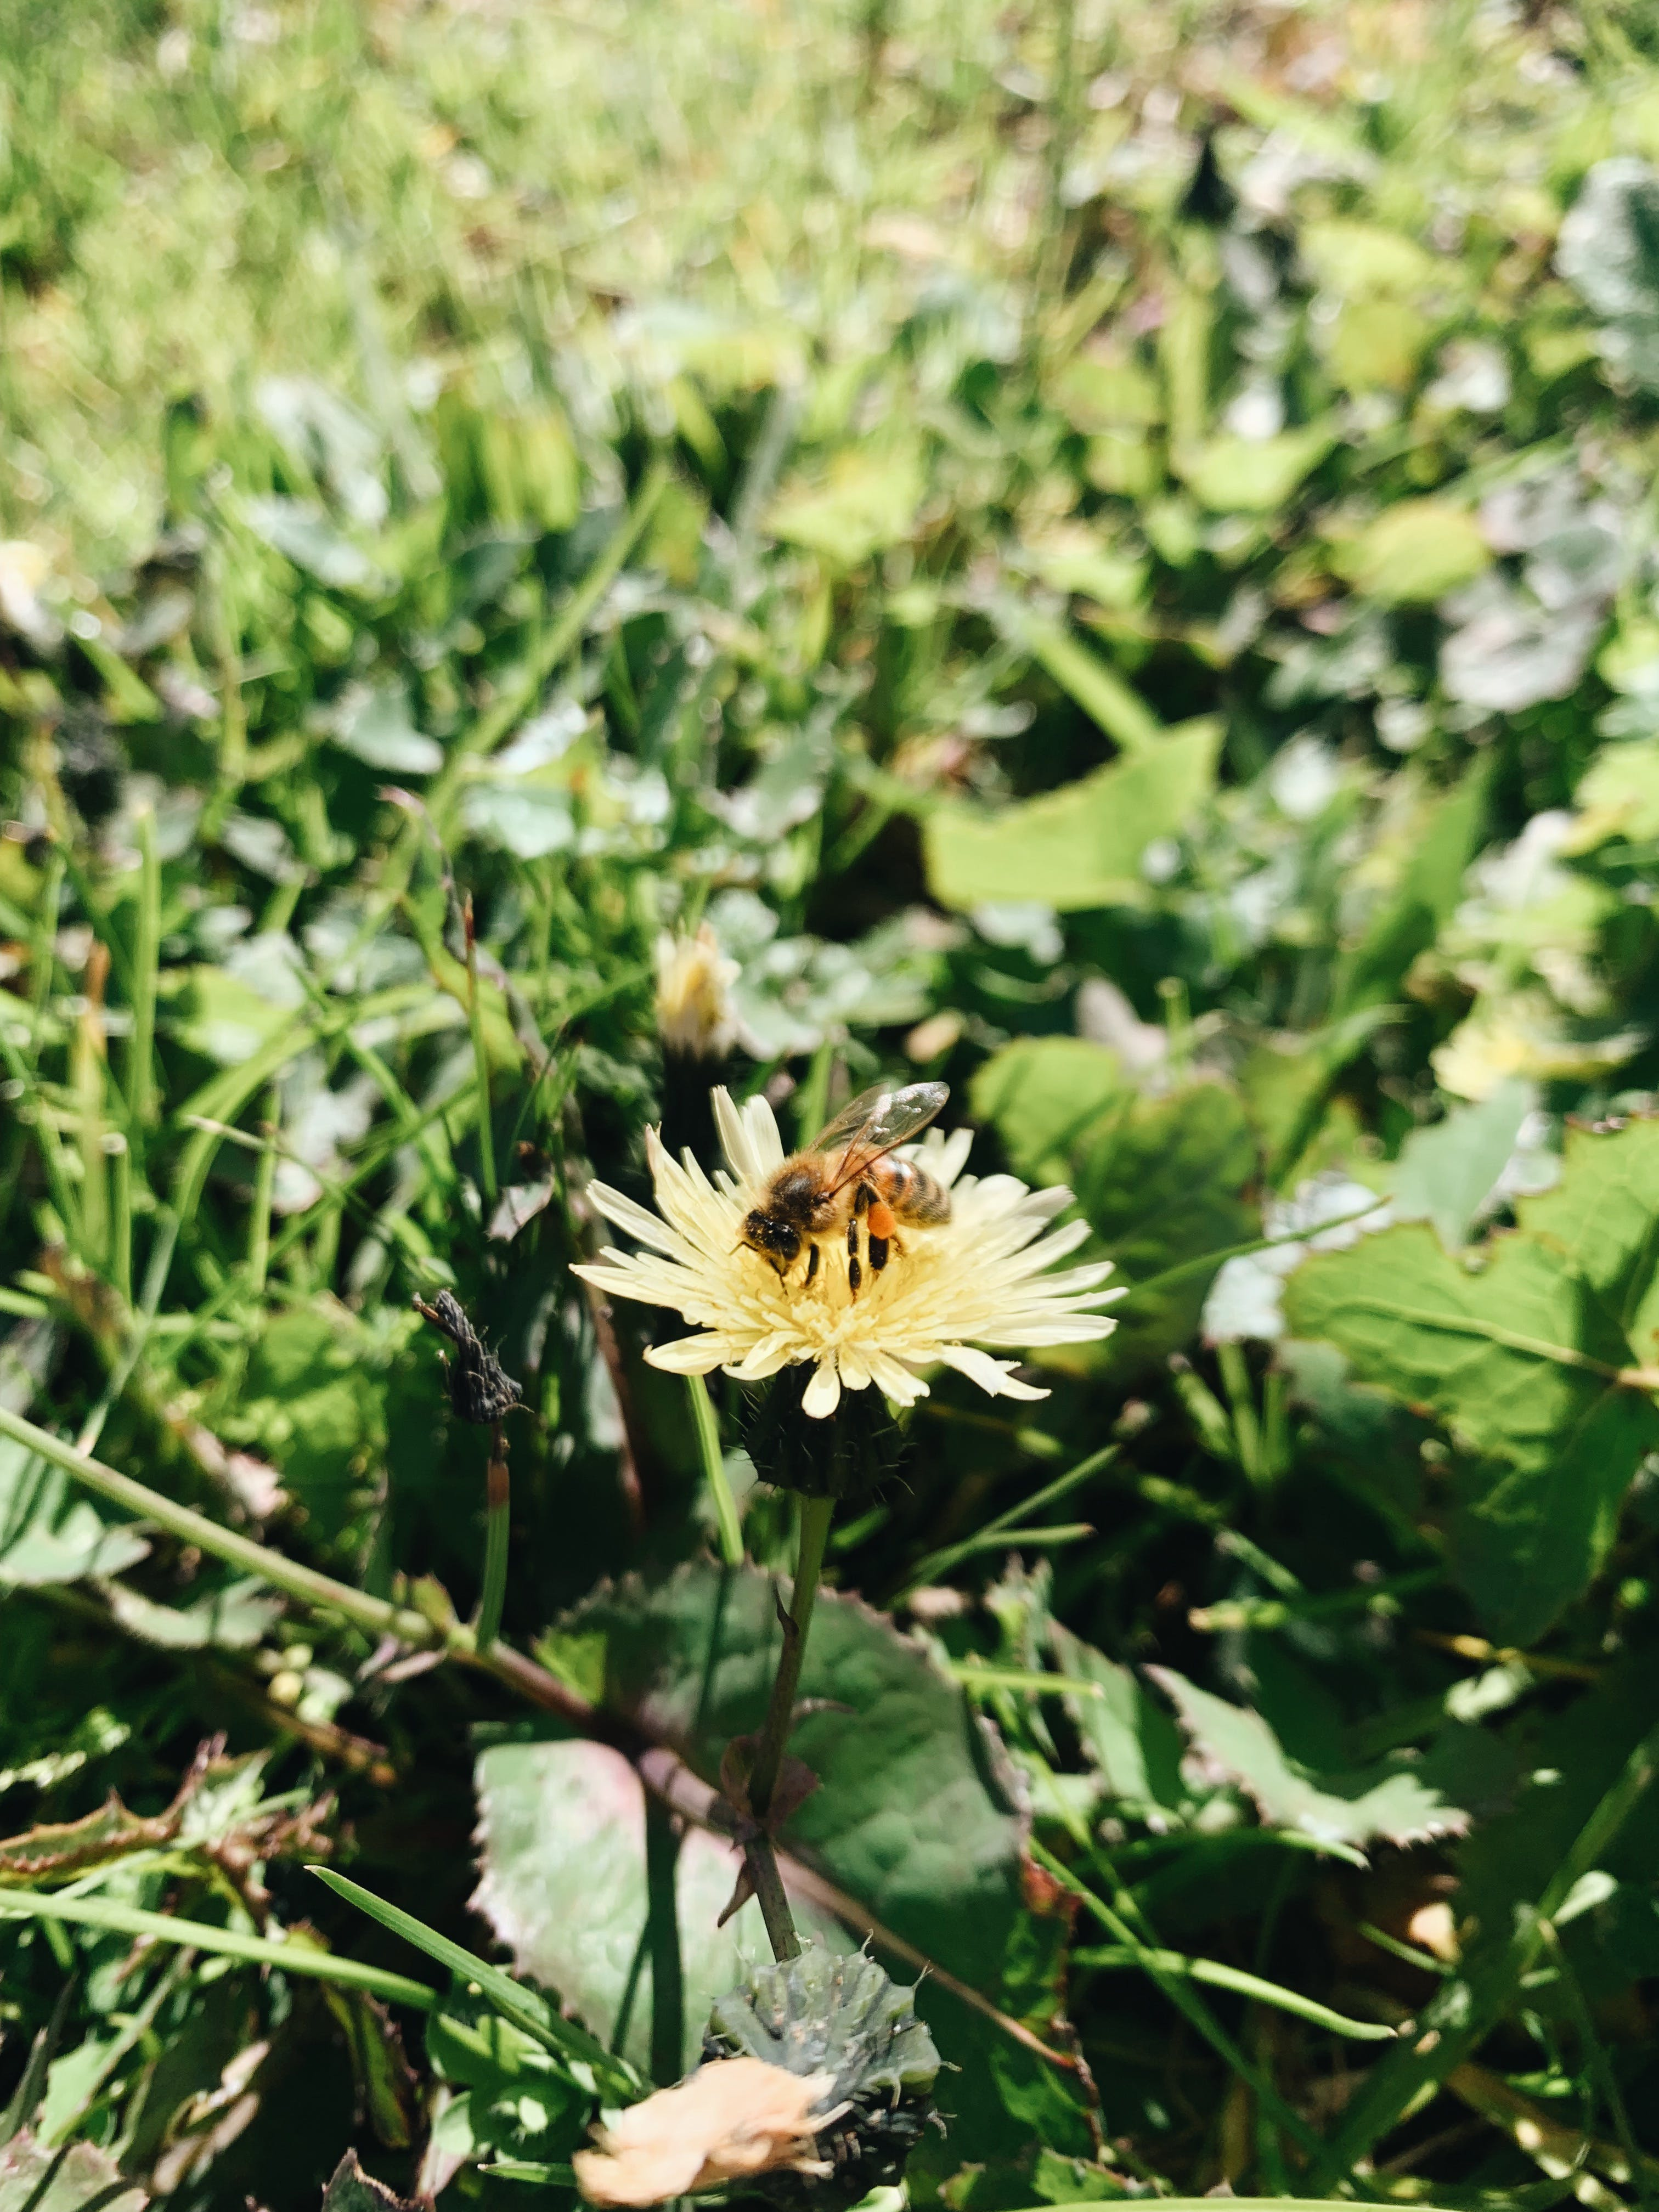 A Bee Enjoying the Spring Flowers